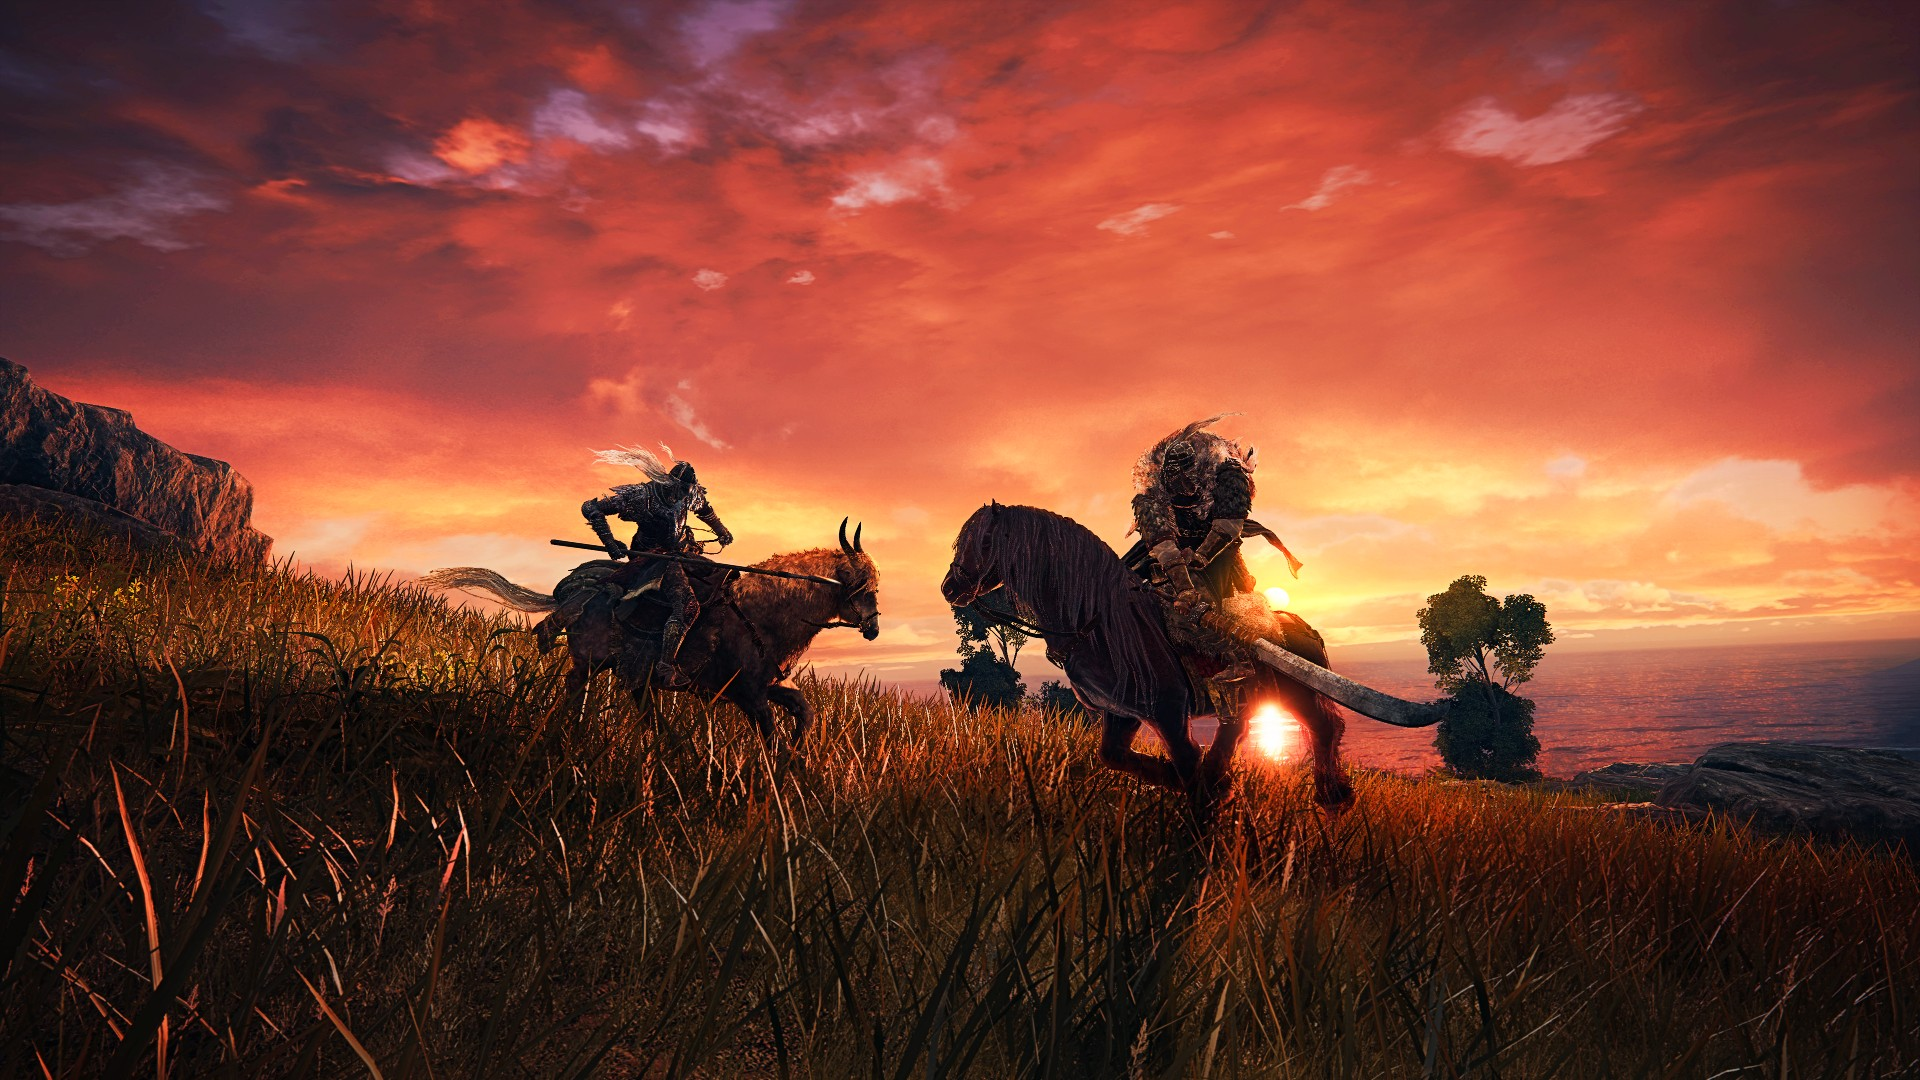 Elden Ring has multiplayer and a dynamic weather system